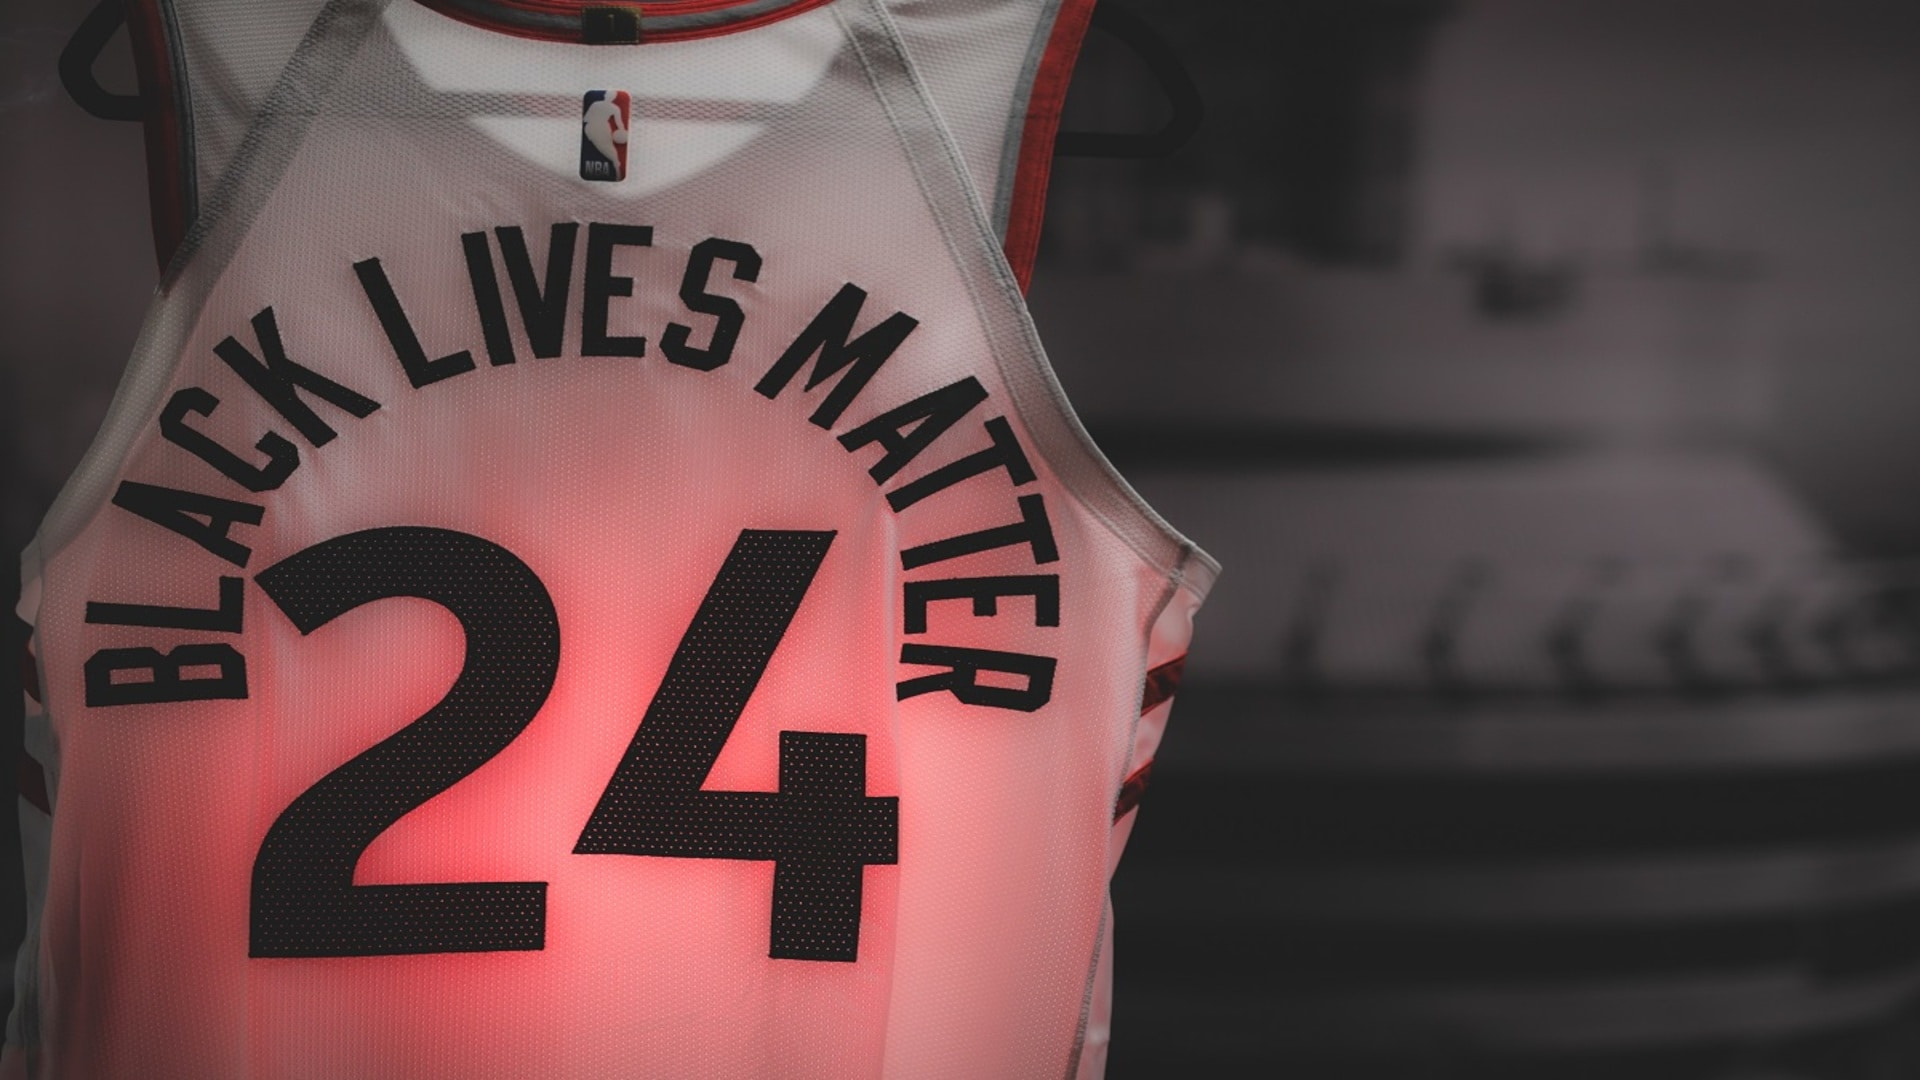 The Toronto Raptors unveil their jersey statements | Open Gym: Moment presented by Bell